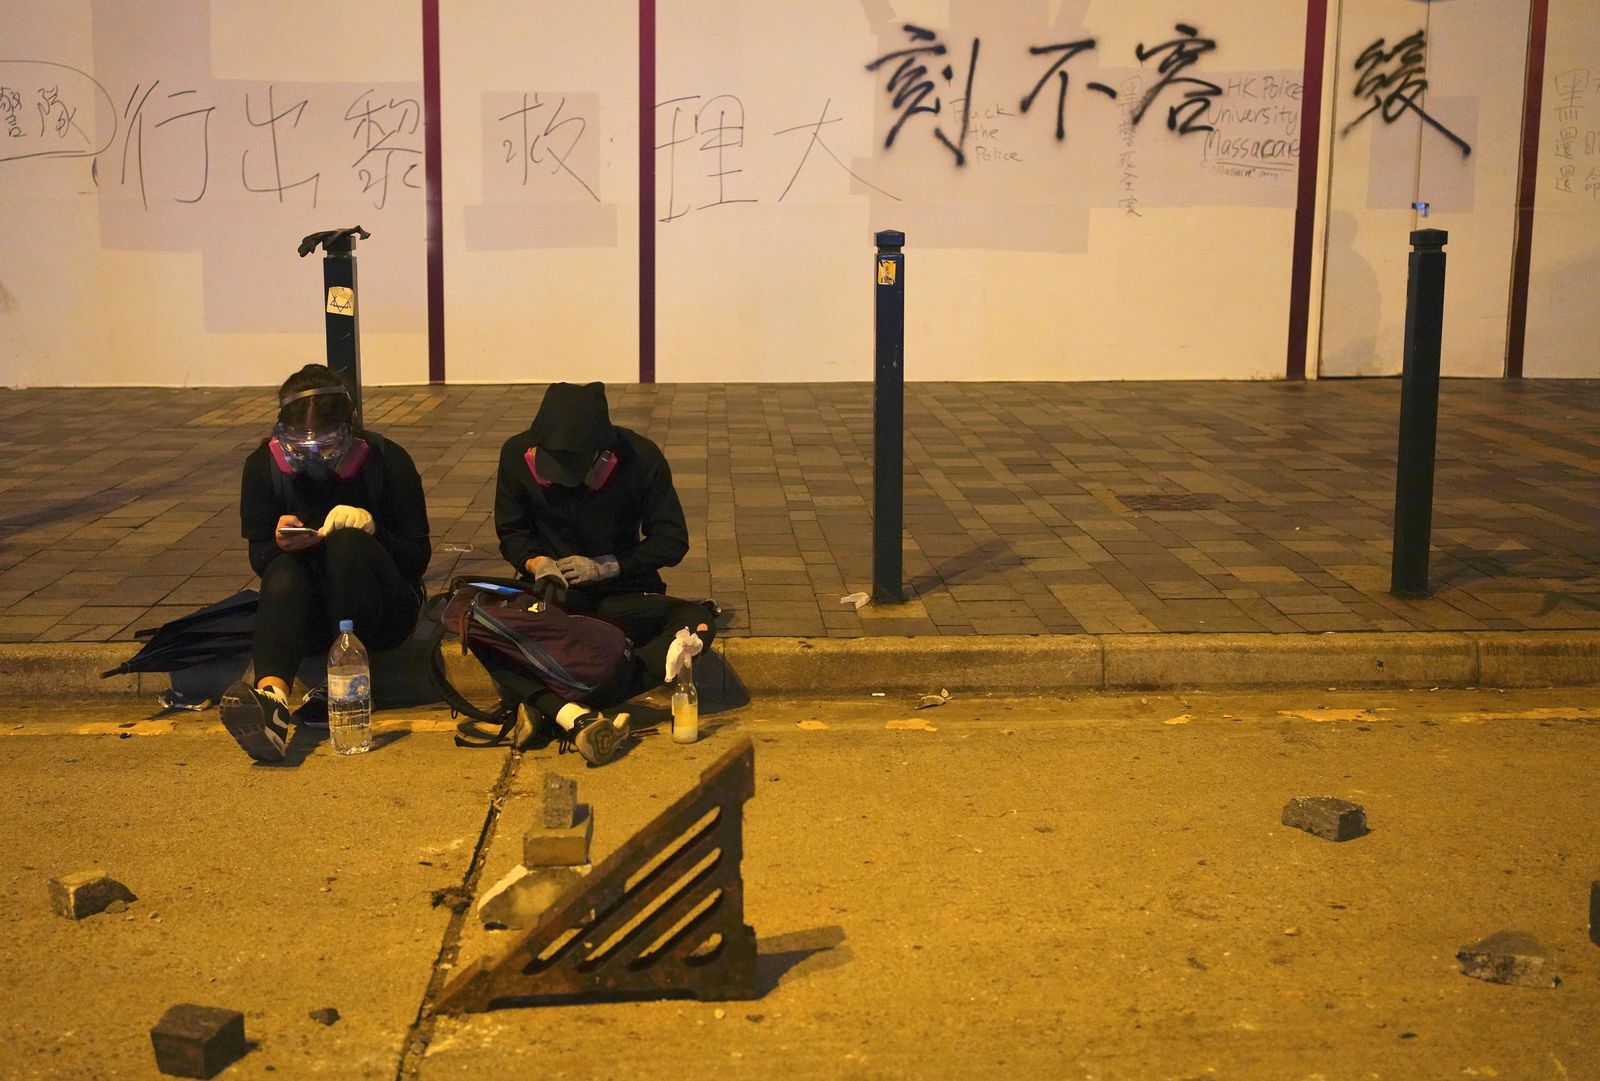 Protestors rest near a road barricaded with bricks in Hong Kong, early Tuesday, Nov. 19, 2019. (AP Photo/Vincent Yu)